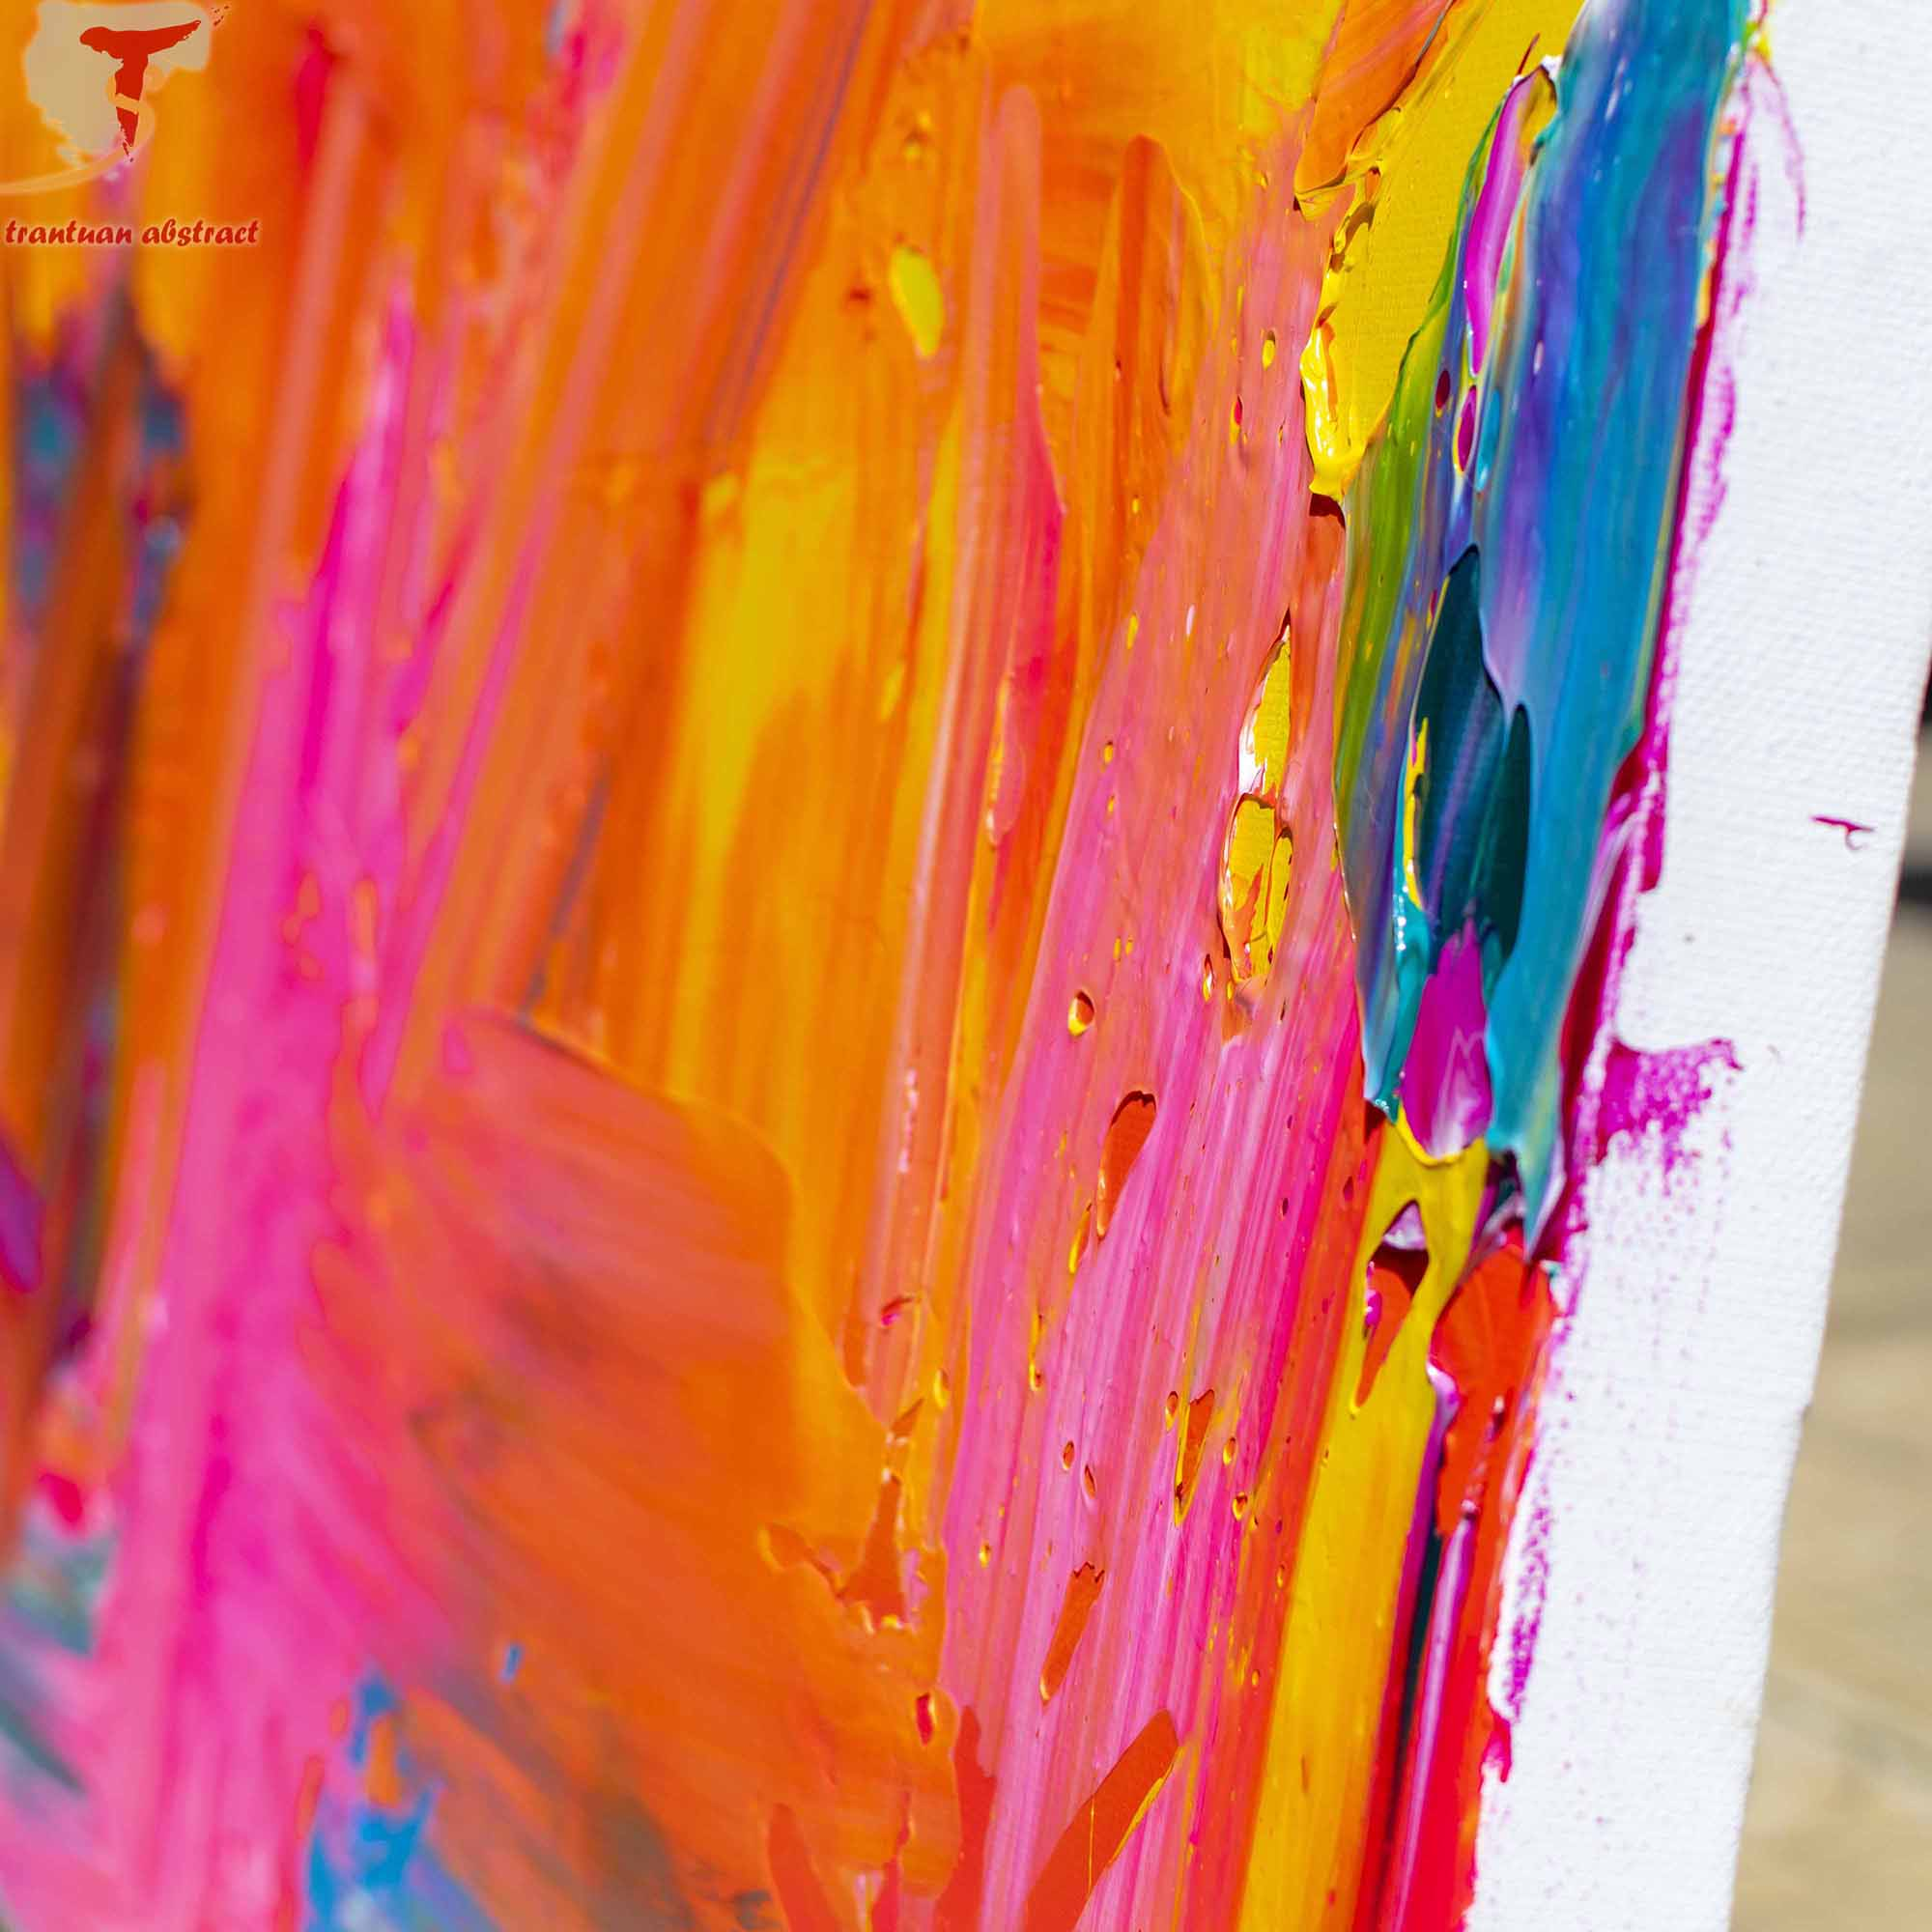 Tran Tuan Abstract Sweet Colors 2021 135 x 80 x 5 cm Acrylic on Canvas Painting Detail